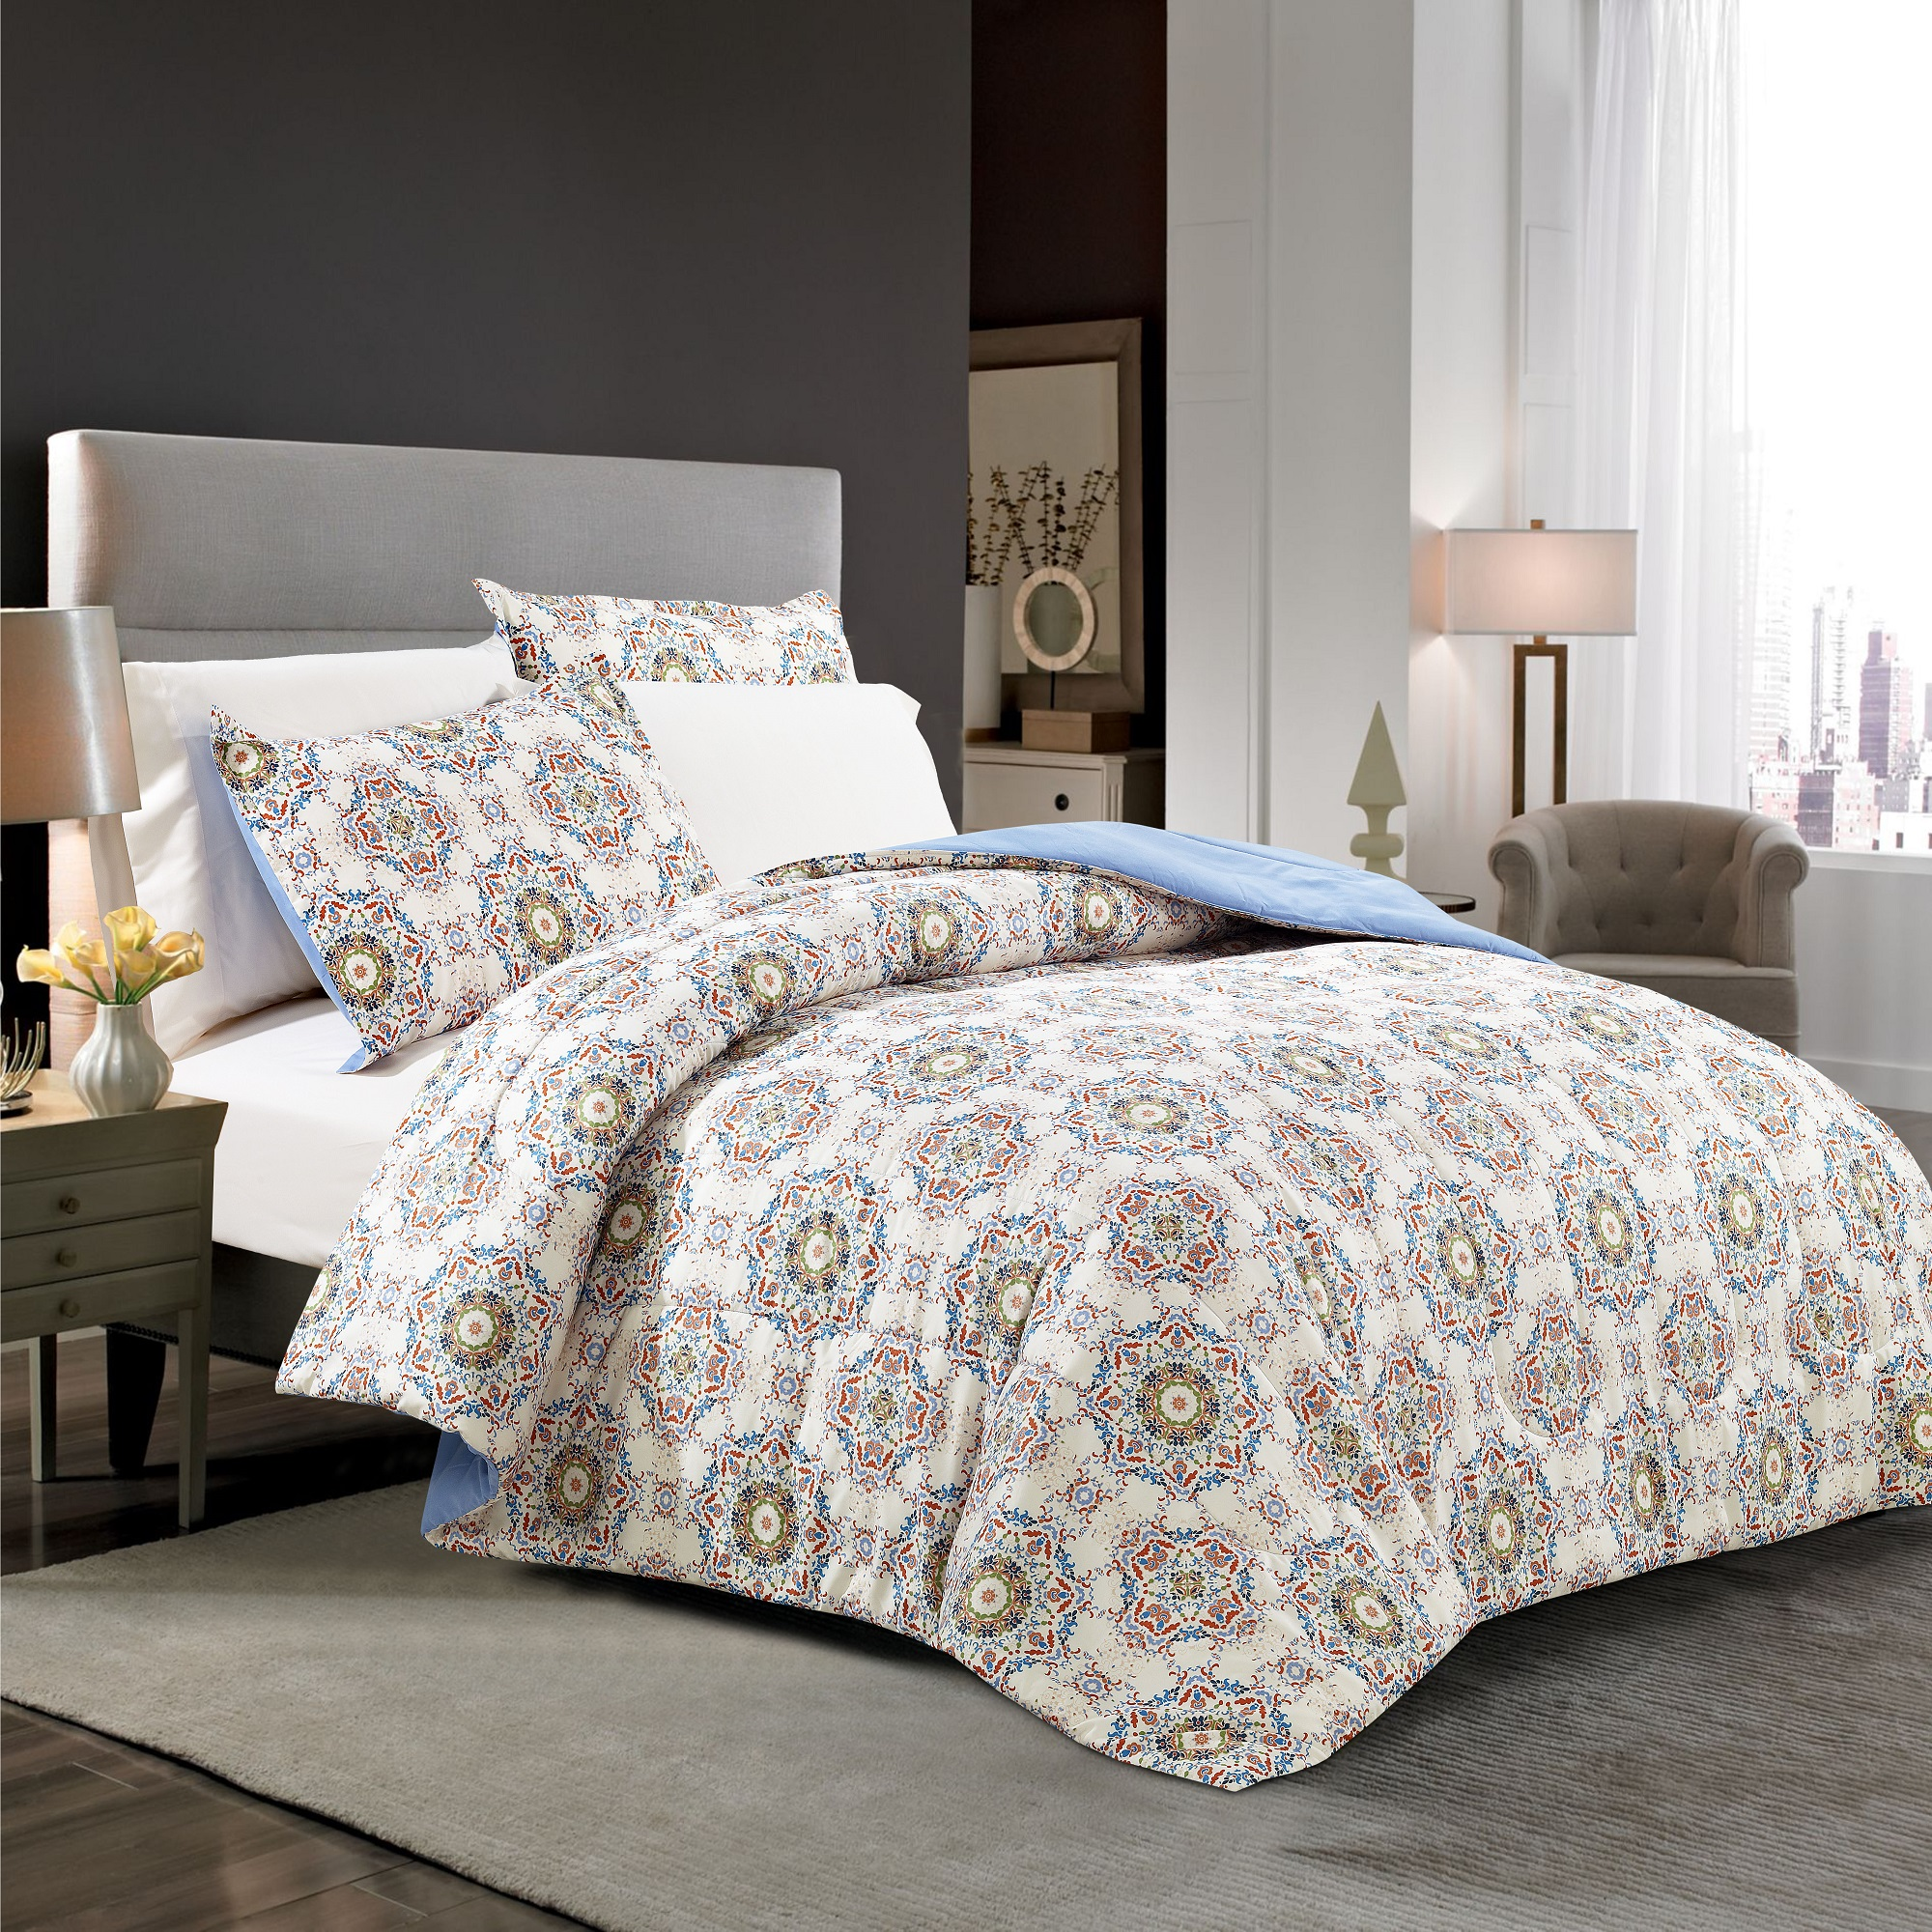 Mainstays Crafted Discoveries Bed-in-a-Bag Complete Bedding Set